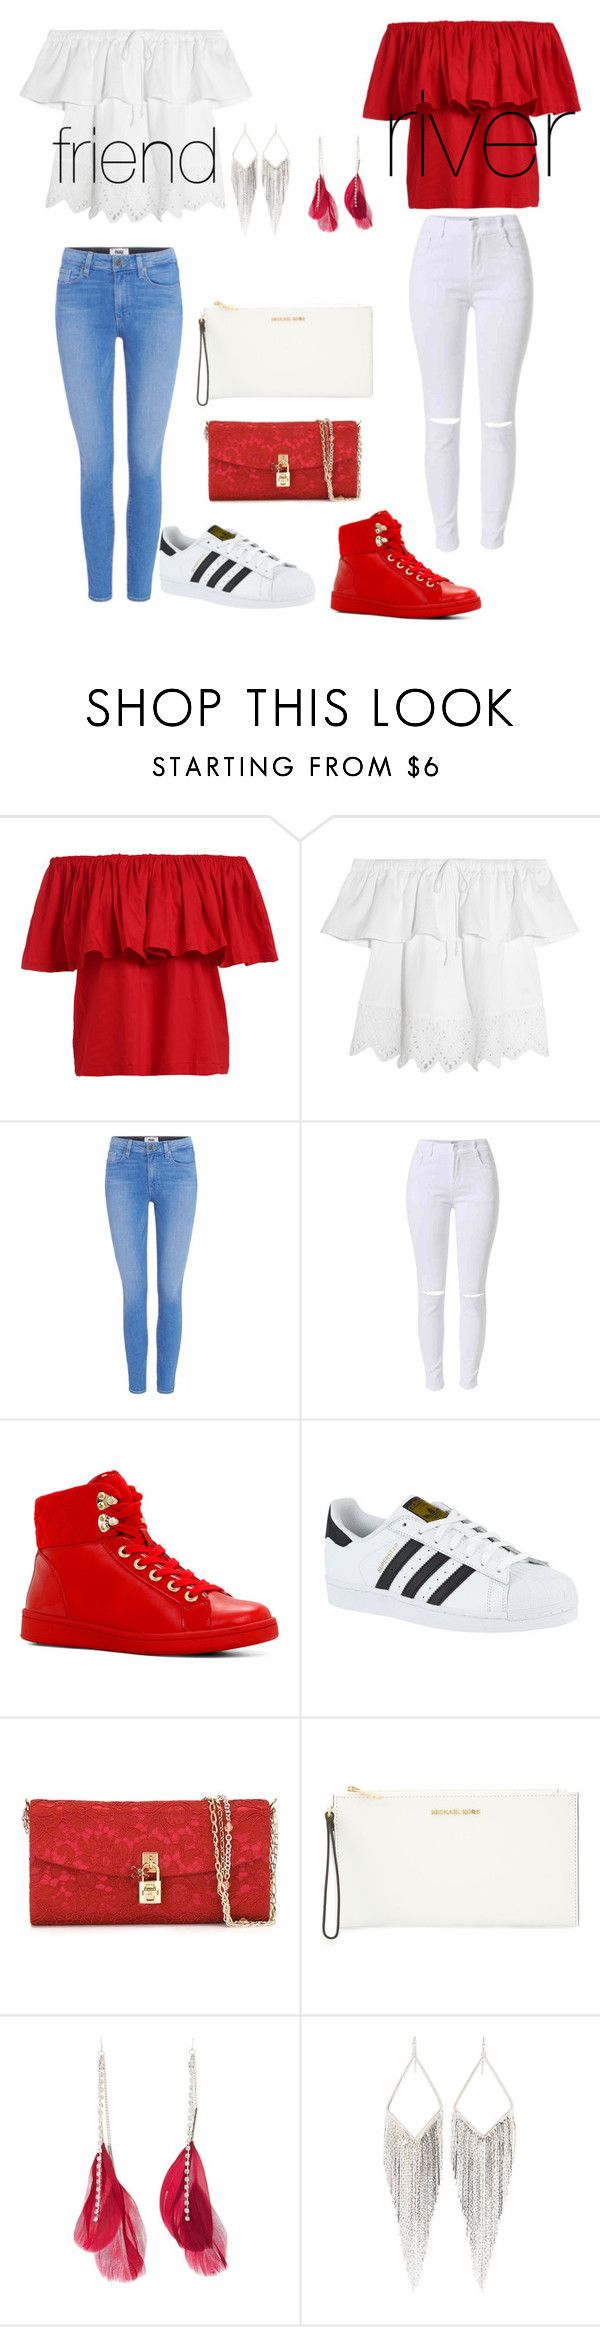 """""""Untitled #45"""" by ashantismith510 ❤ liked on Polyvore featuring Madewell, Paige Denim, ALDO, adidas, Dolce&Gabbana, MICHAEL Michael Kors, Charlotte Russe and Jules Smith"""